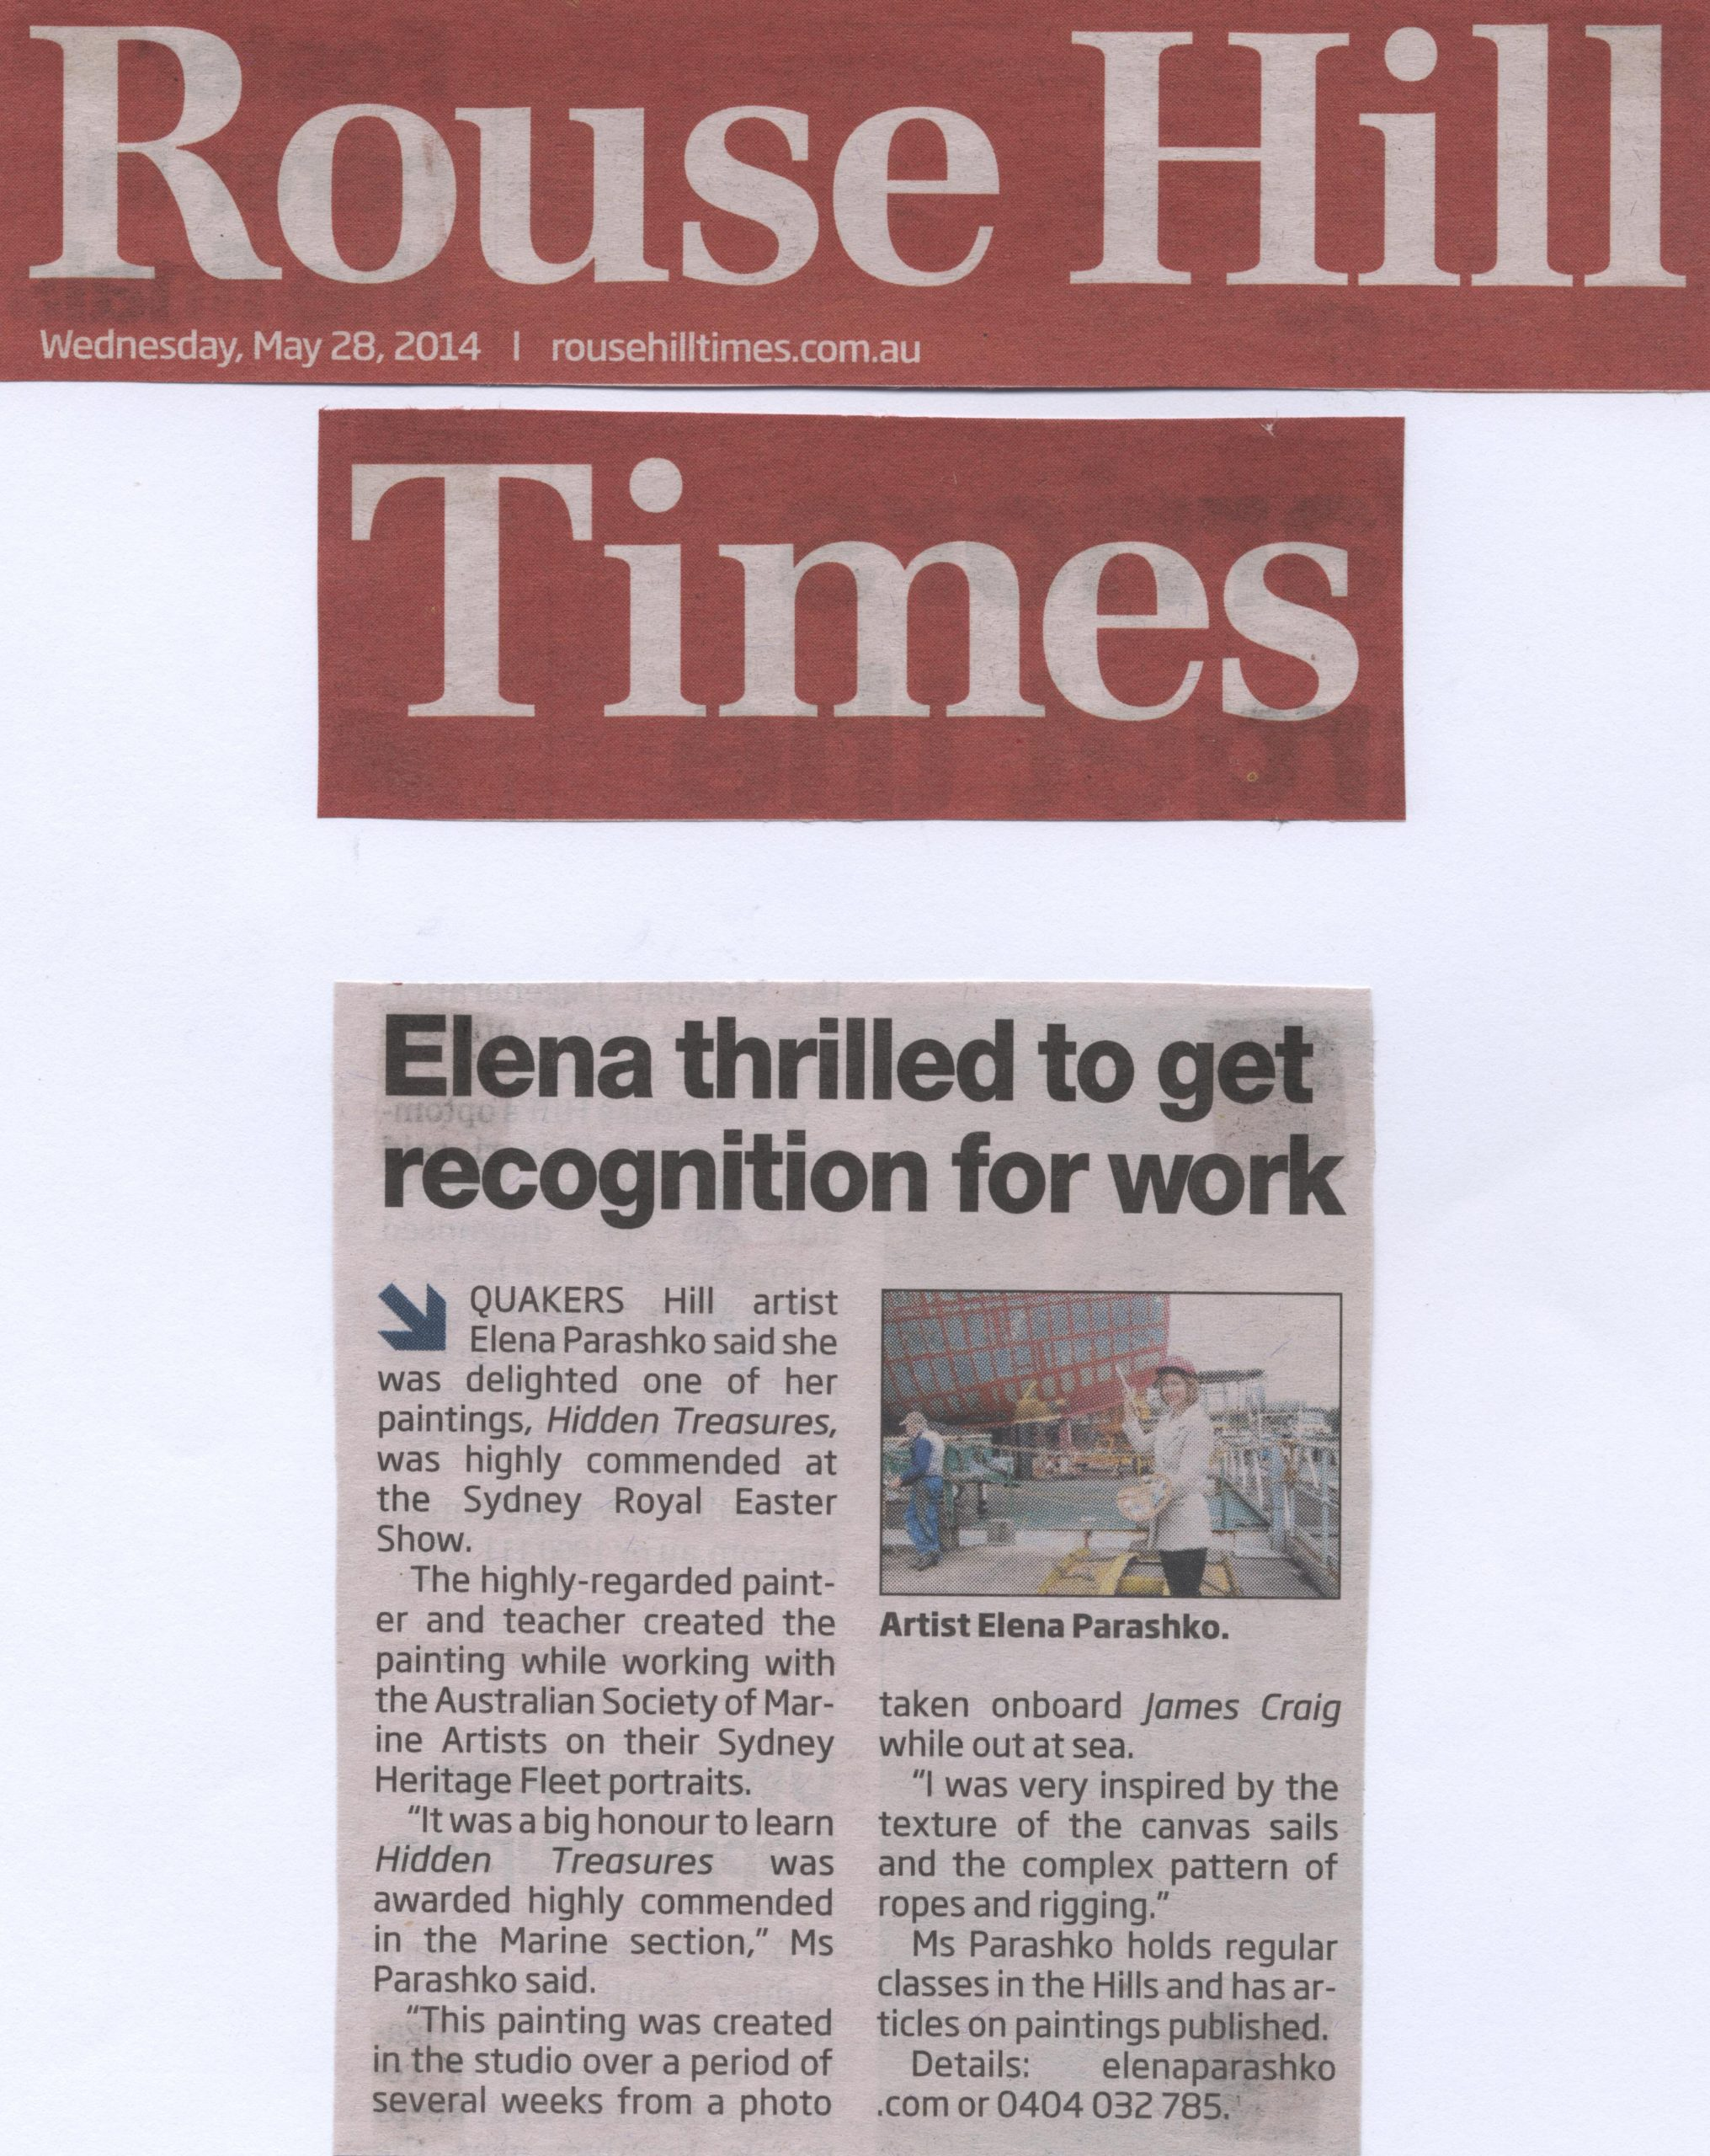 Elena thrilled to get recognition for work